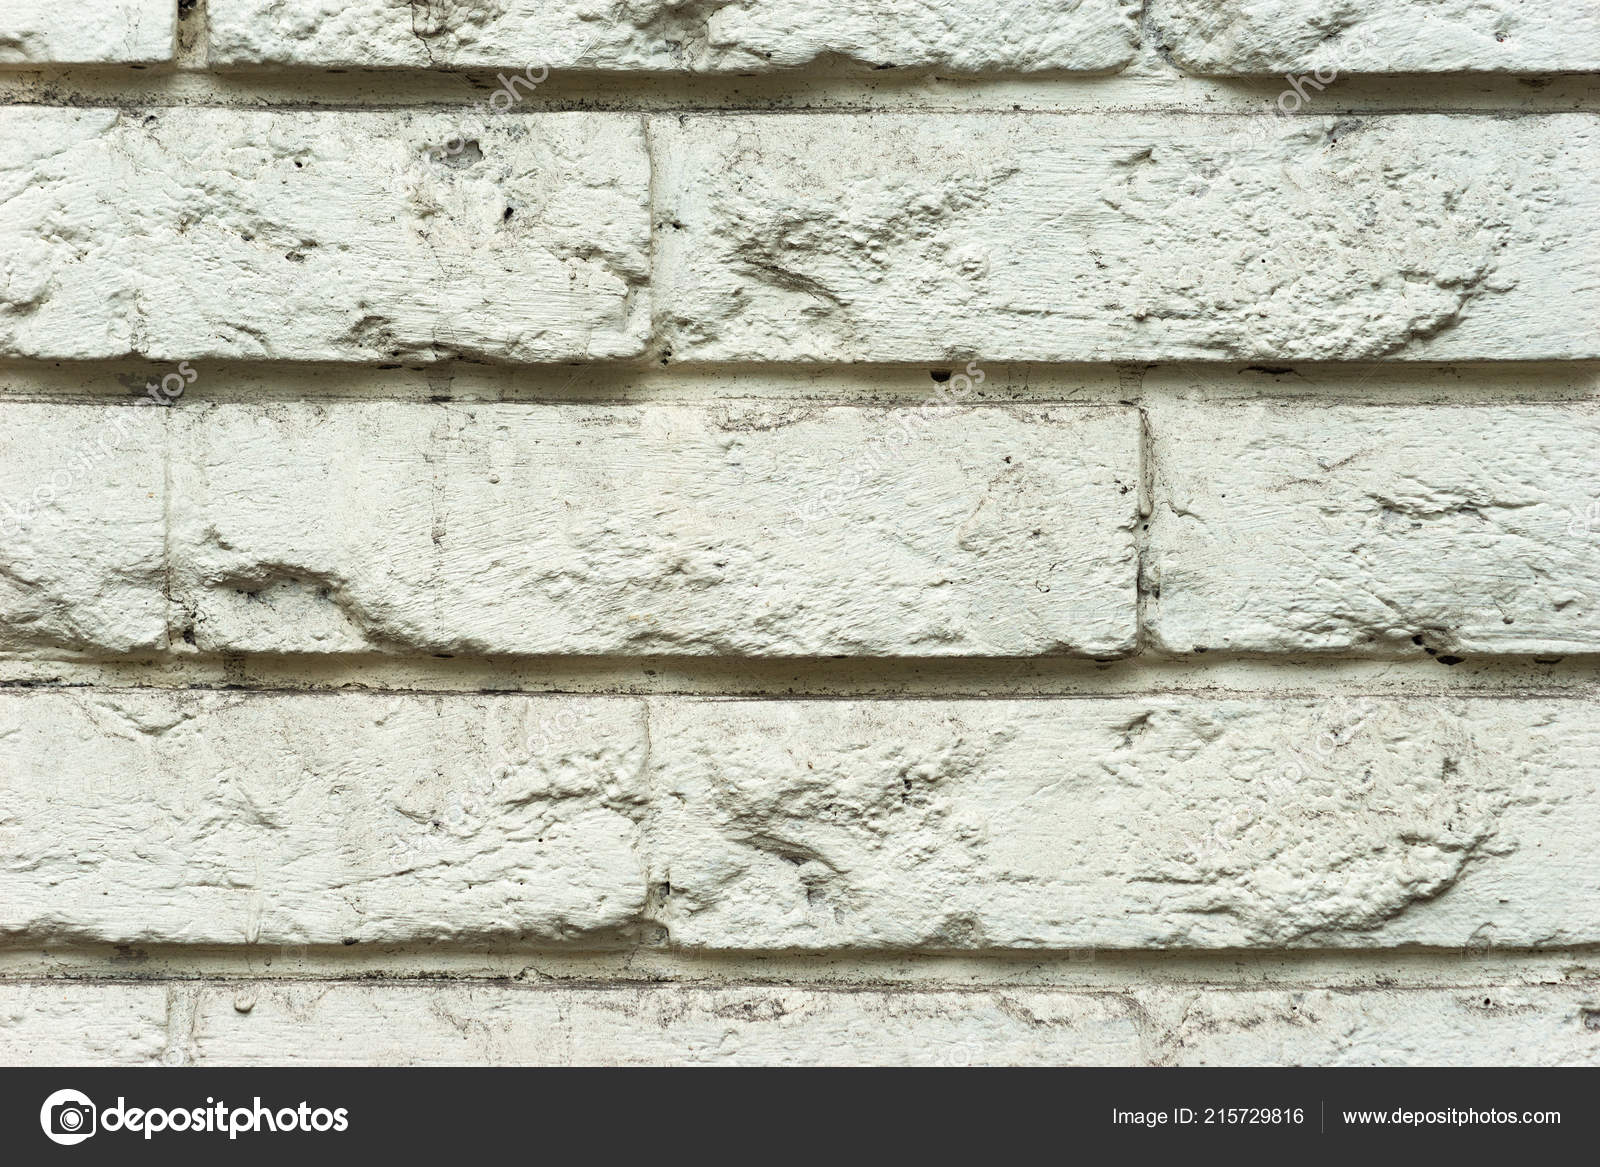 Grunge Rough Brick Wall Texture Painted White Light Beige Paint